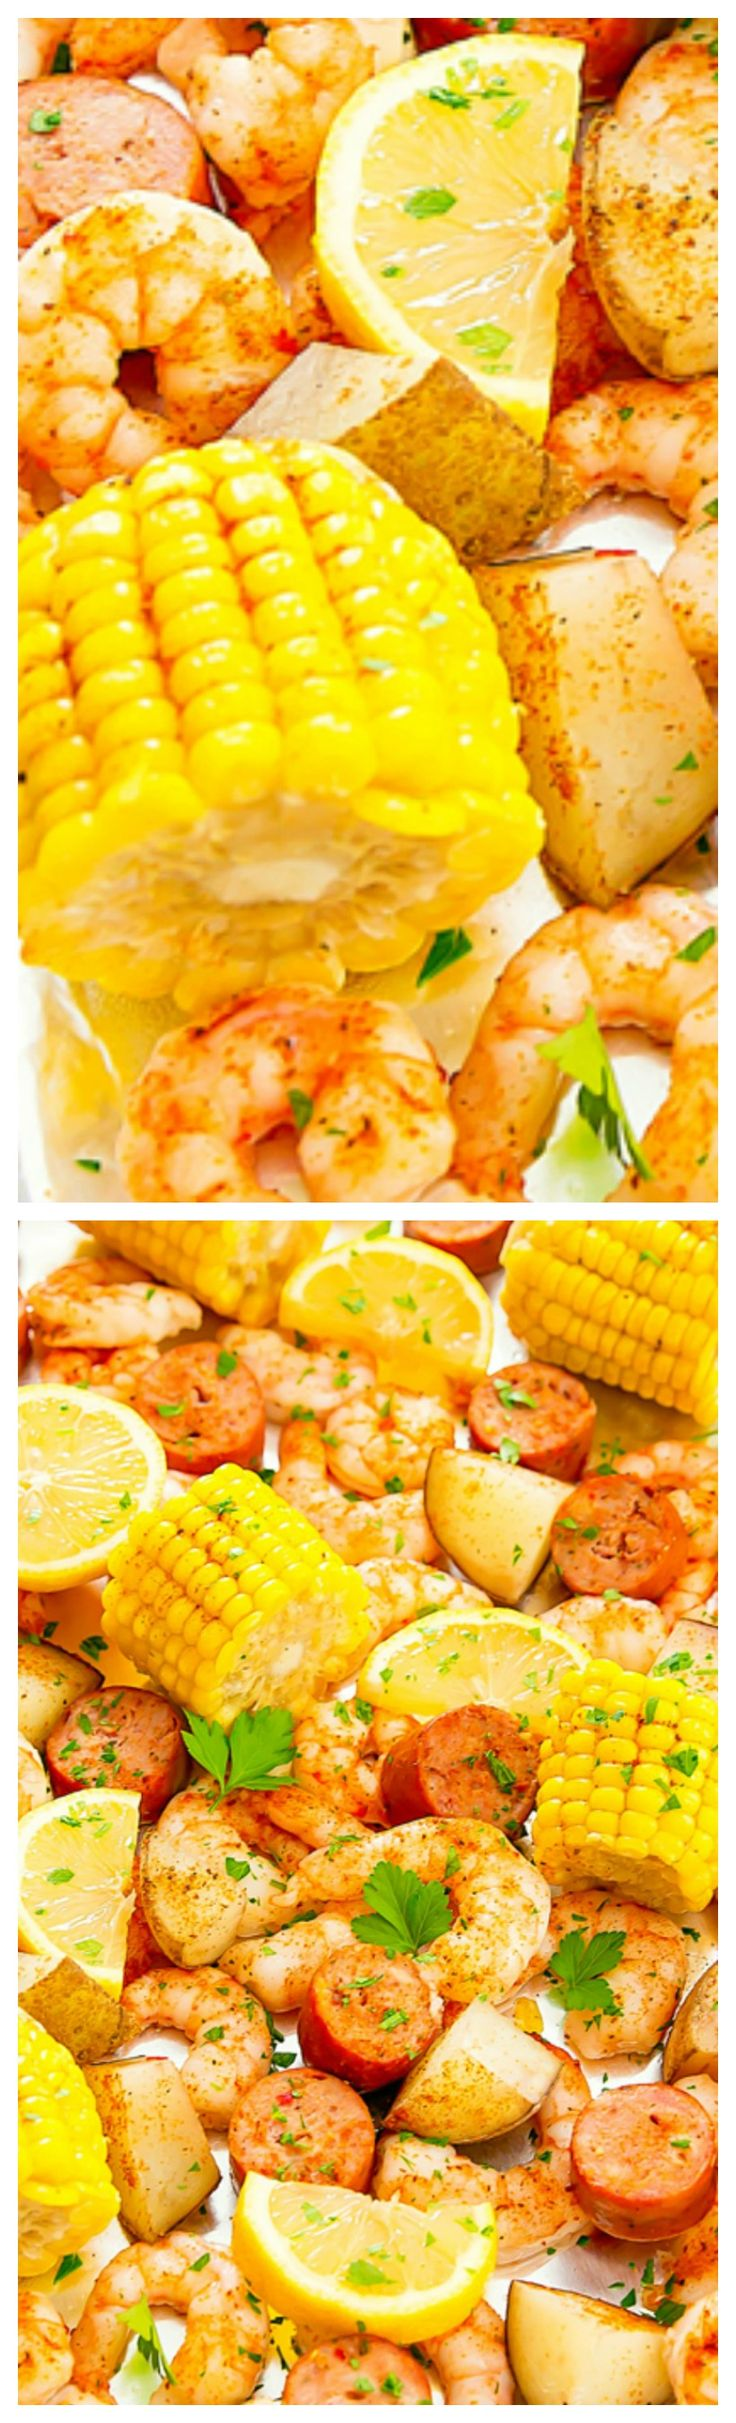 Foil Sheet Pan Oven Shrimp Boil ~ Everything is made on one sheet pan for an easy meal with minimal clean-up!